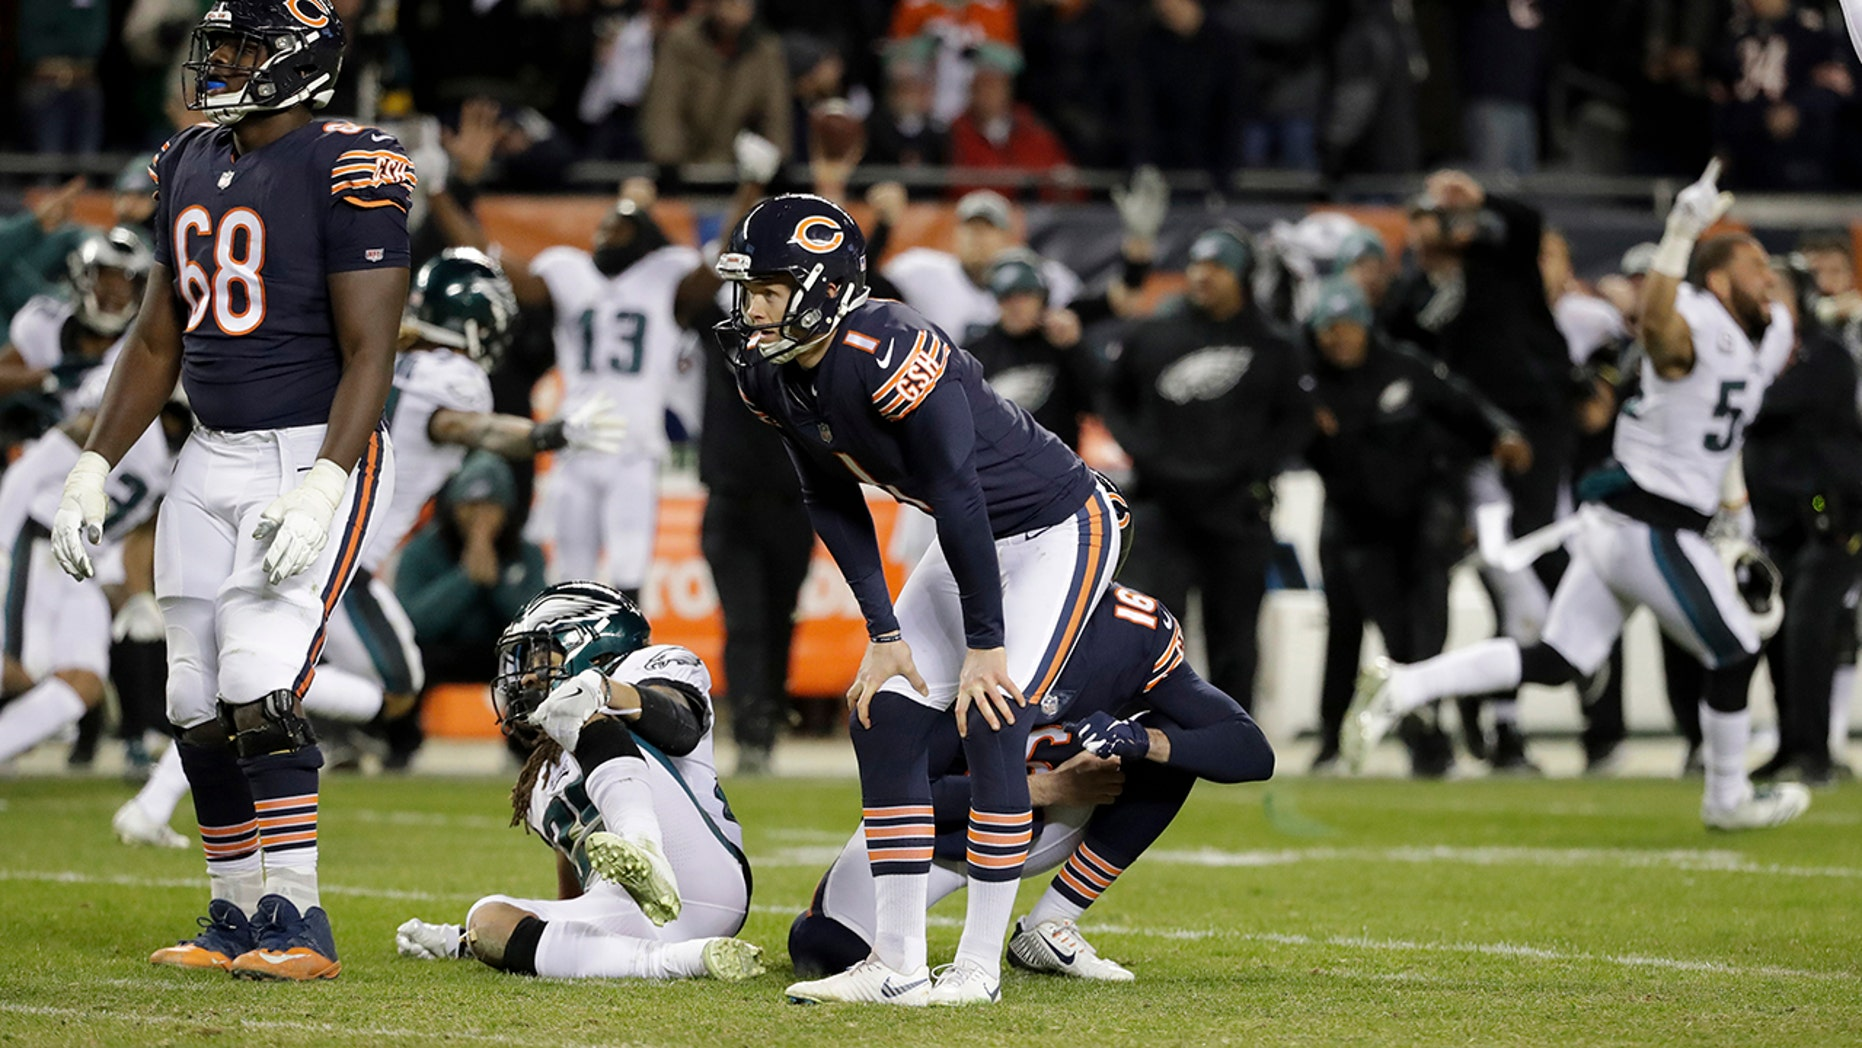 Chicago Bears kicker Cody Parkey (1) reacts after missing a field goal in the closing minute during the second half of an NFL wild-card playoff football game against the Philadelphia Eagles Sunday, Jan. 6, 2019, in Chicago. The Eagles won 16-15.